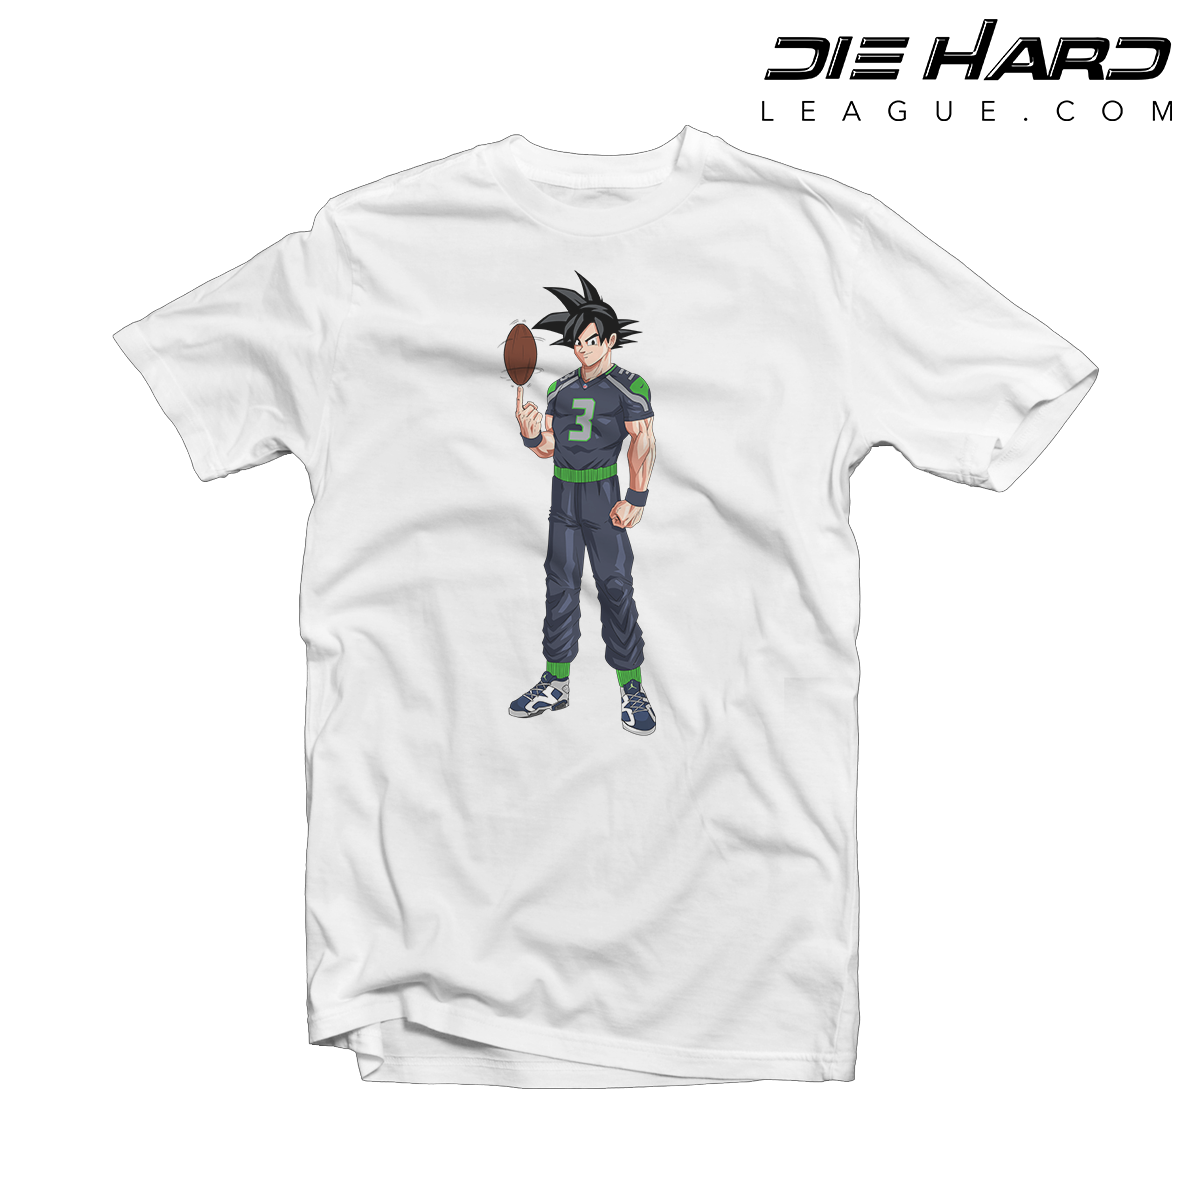 Seattle Seahawks T Shirts - Russell Wilson Goku White Tee   Best ... f910f1e0b